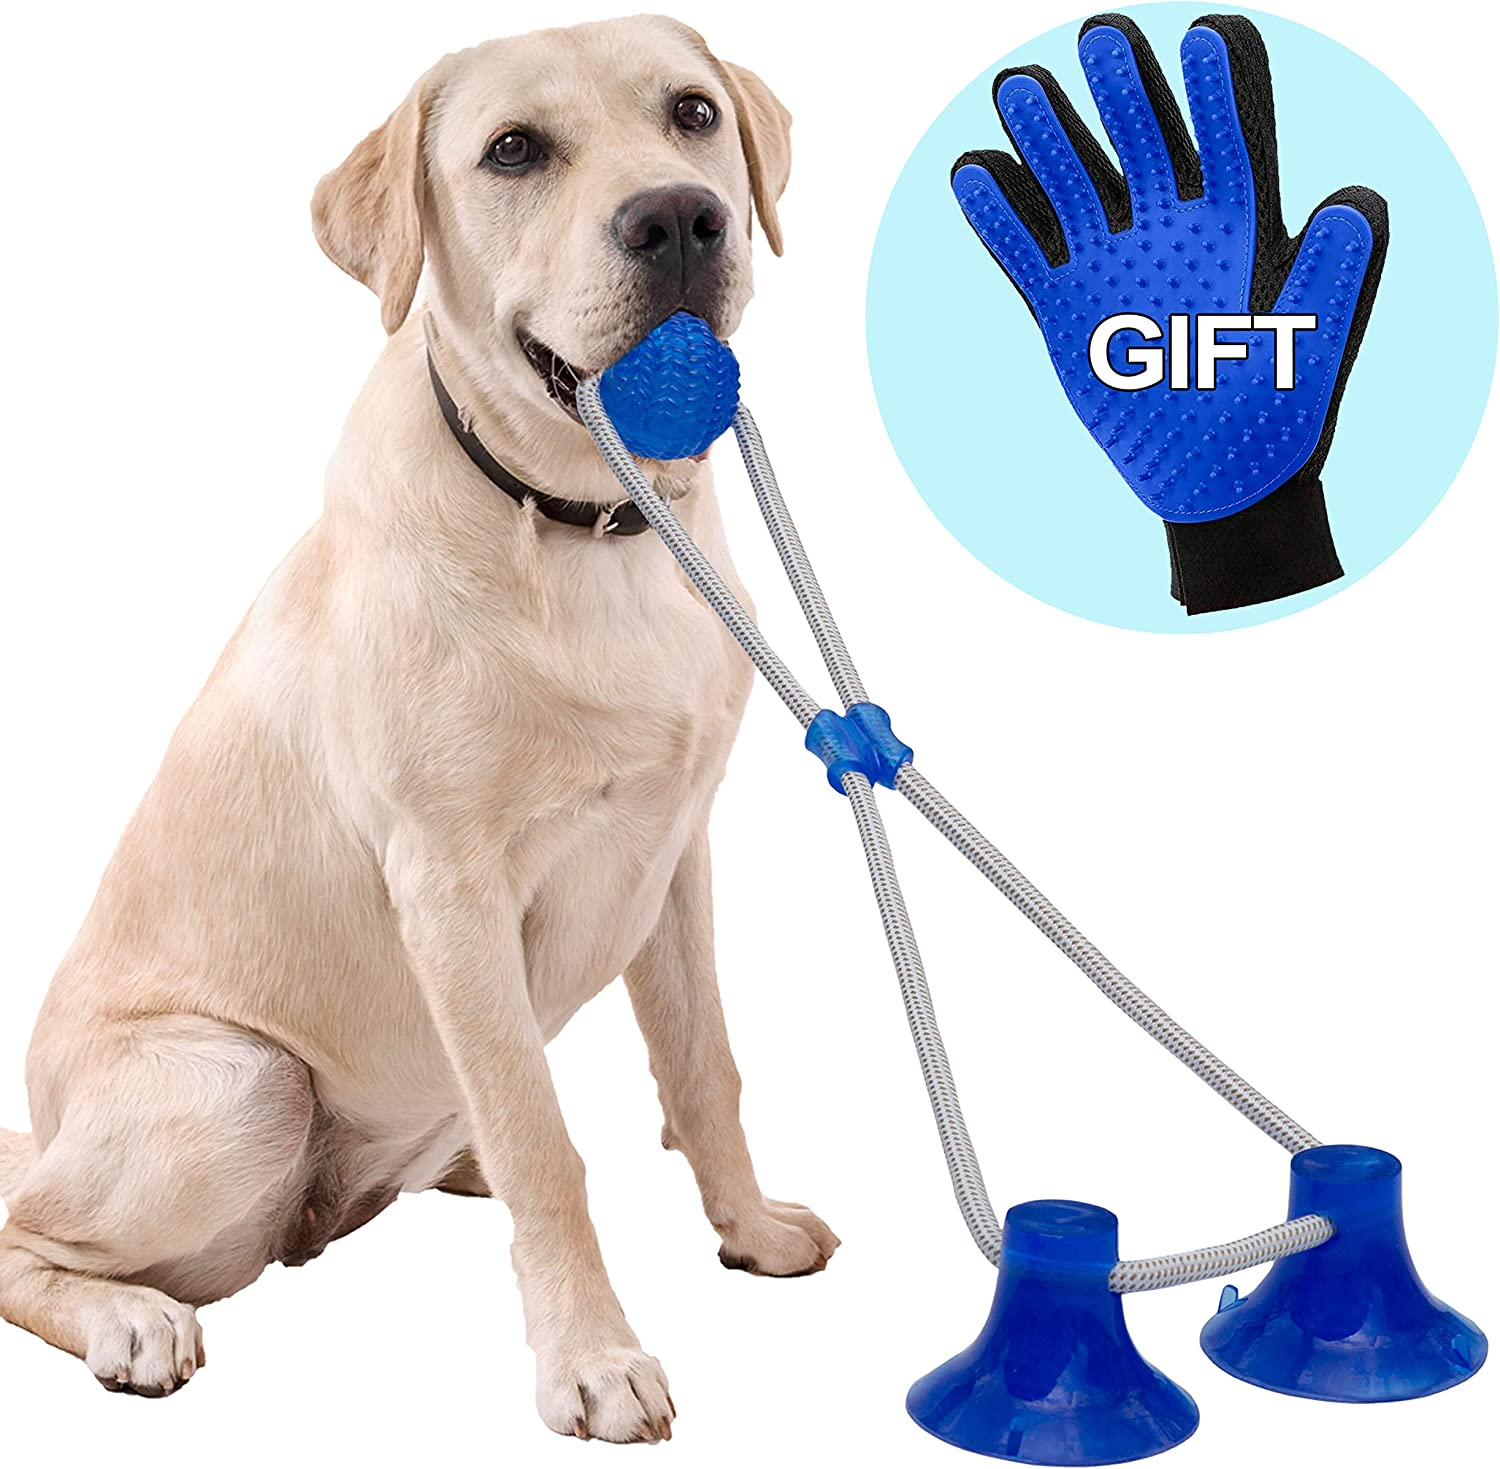 Pet Supplies : Tudoremade Suction Cup Dog Toy with Glove